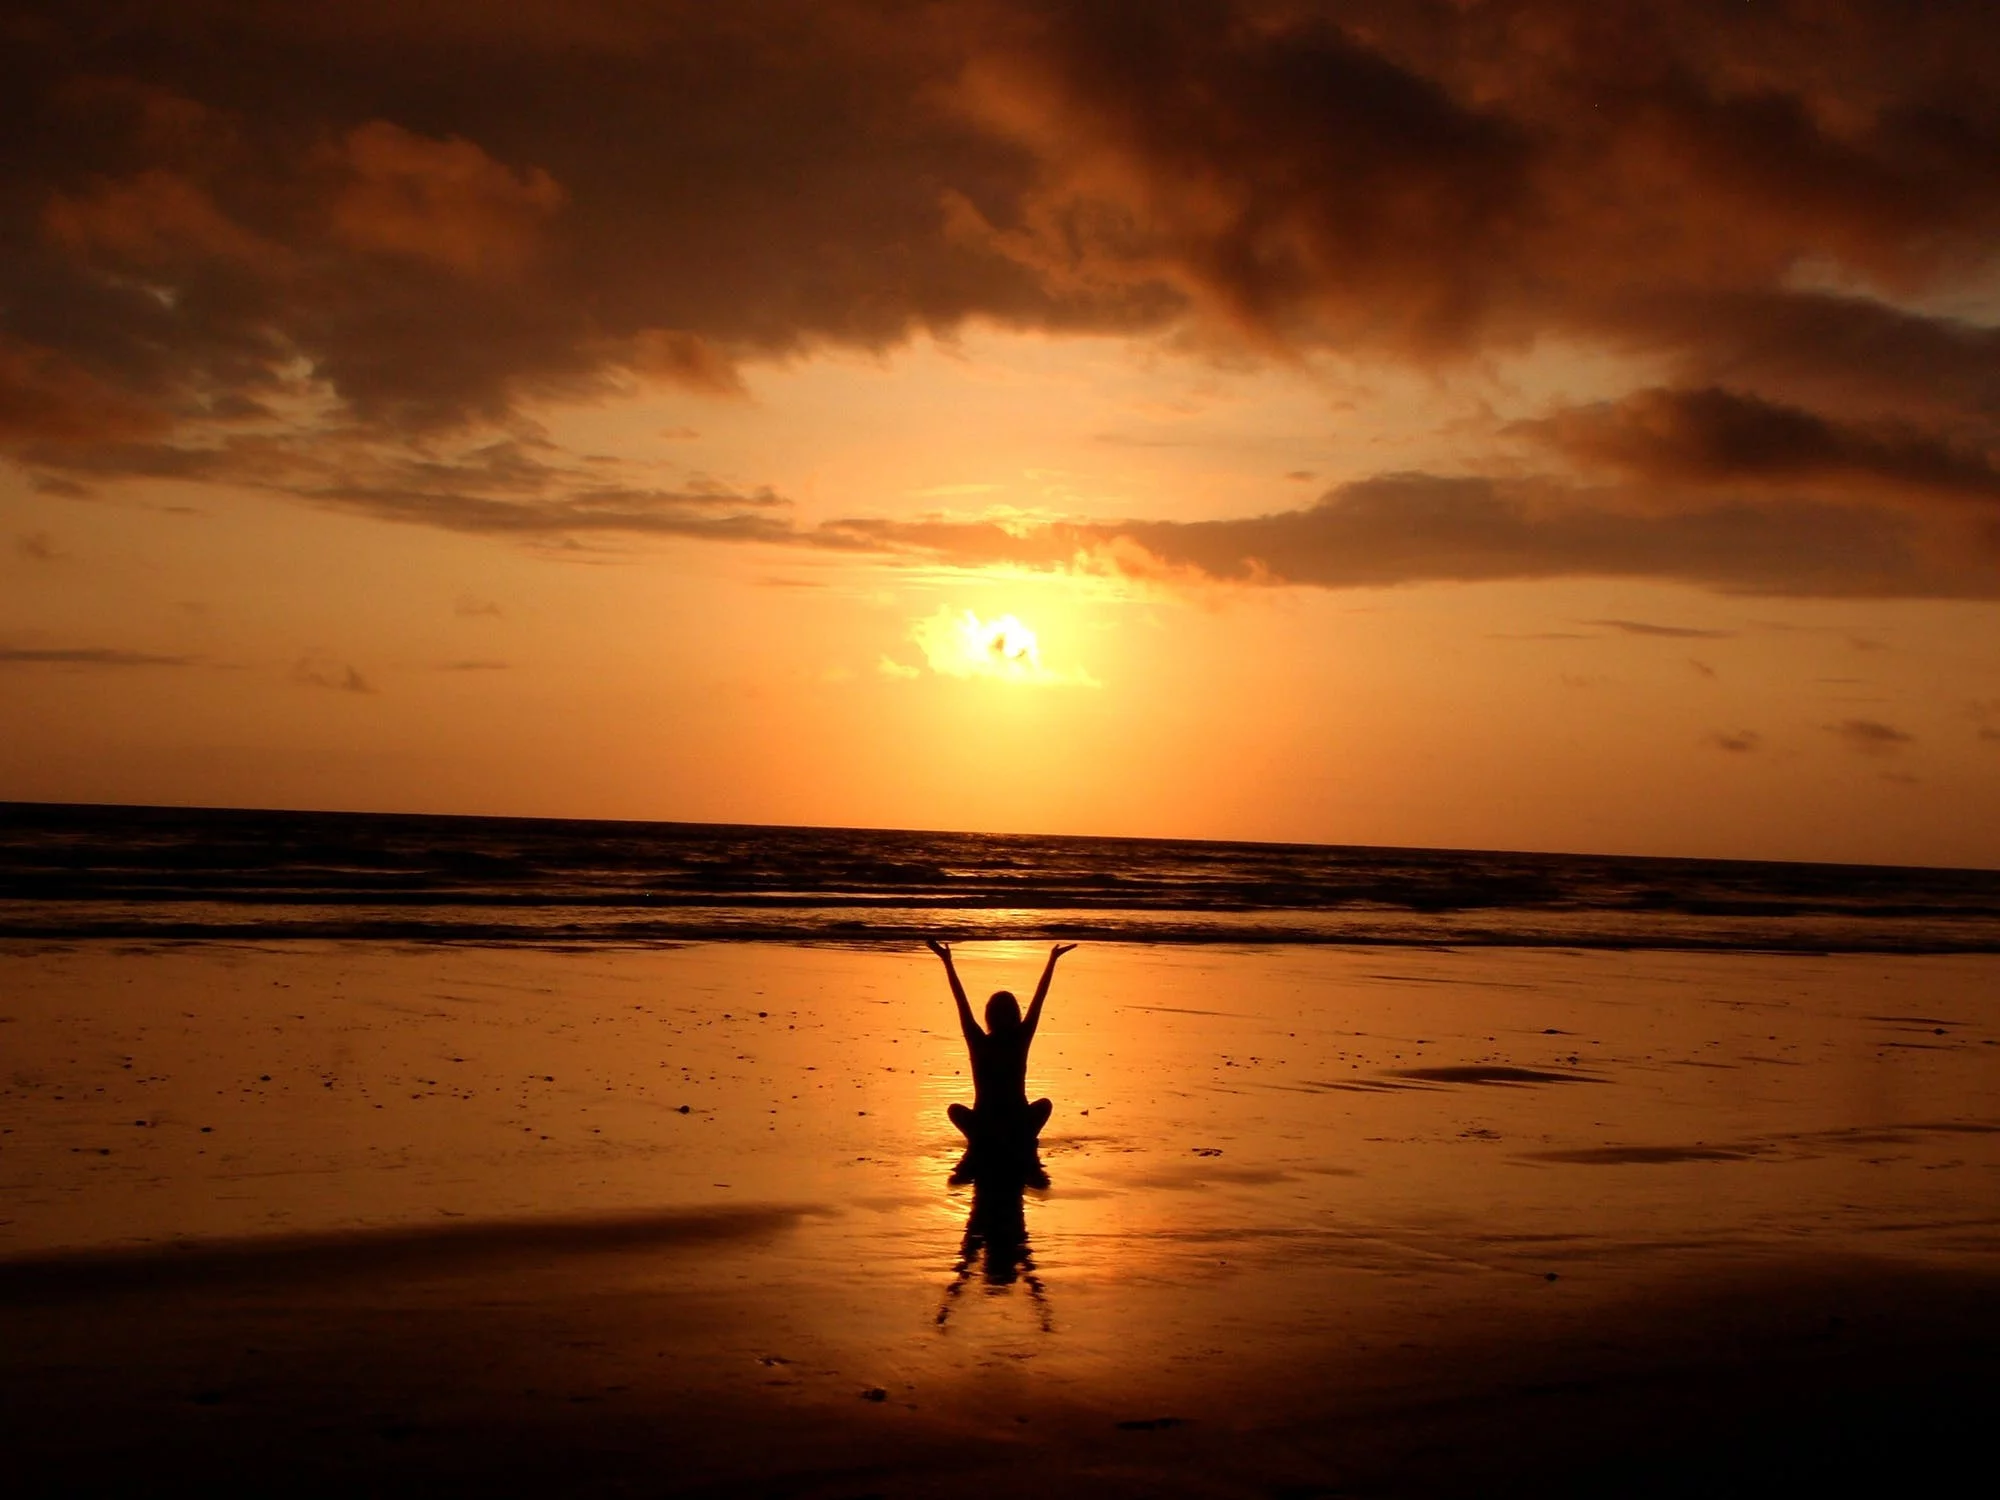 Yoga at the beach on a mental health day